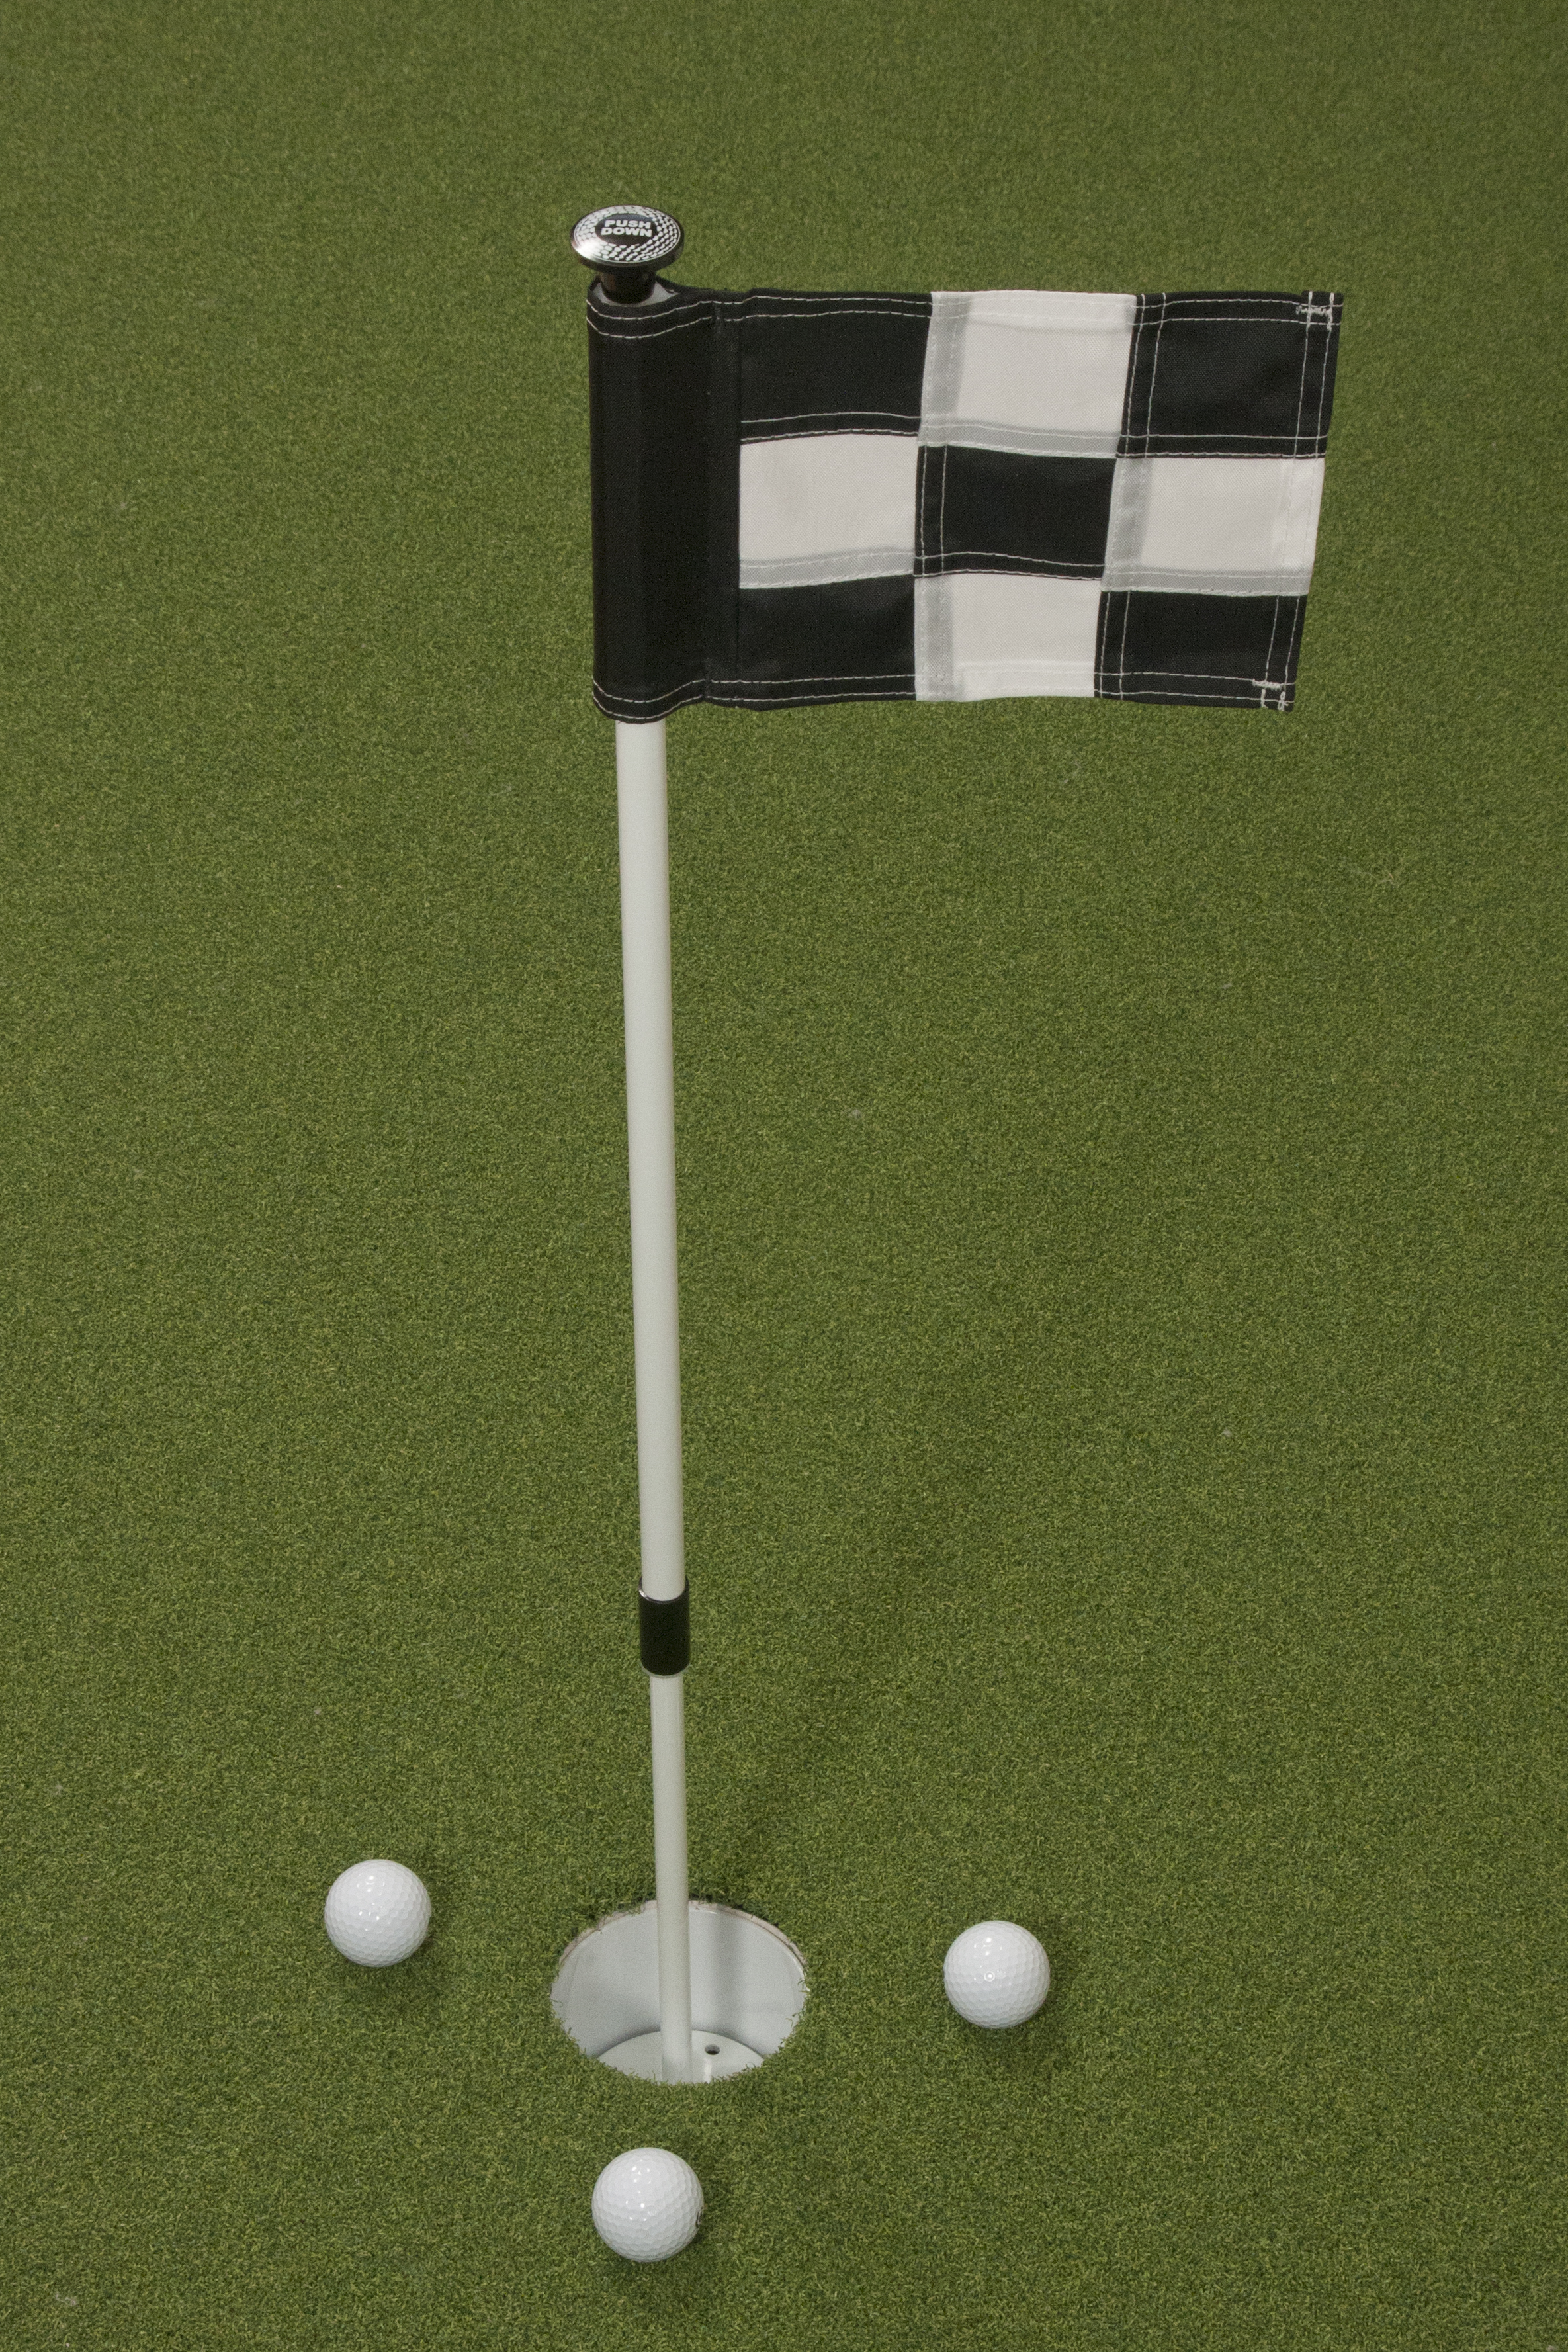 Putting Green Cups and Flags